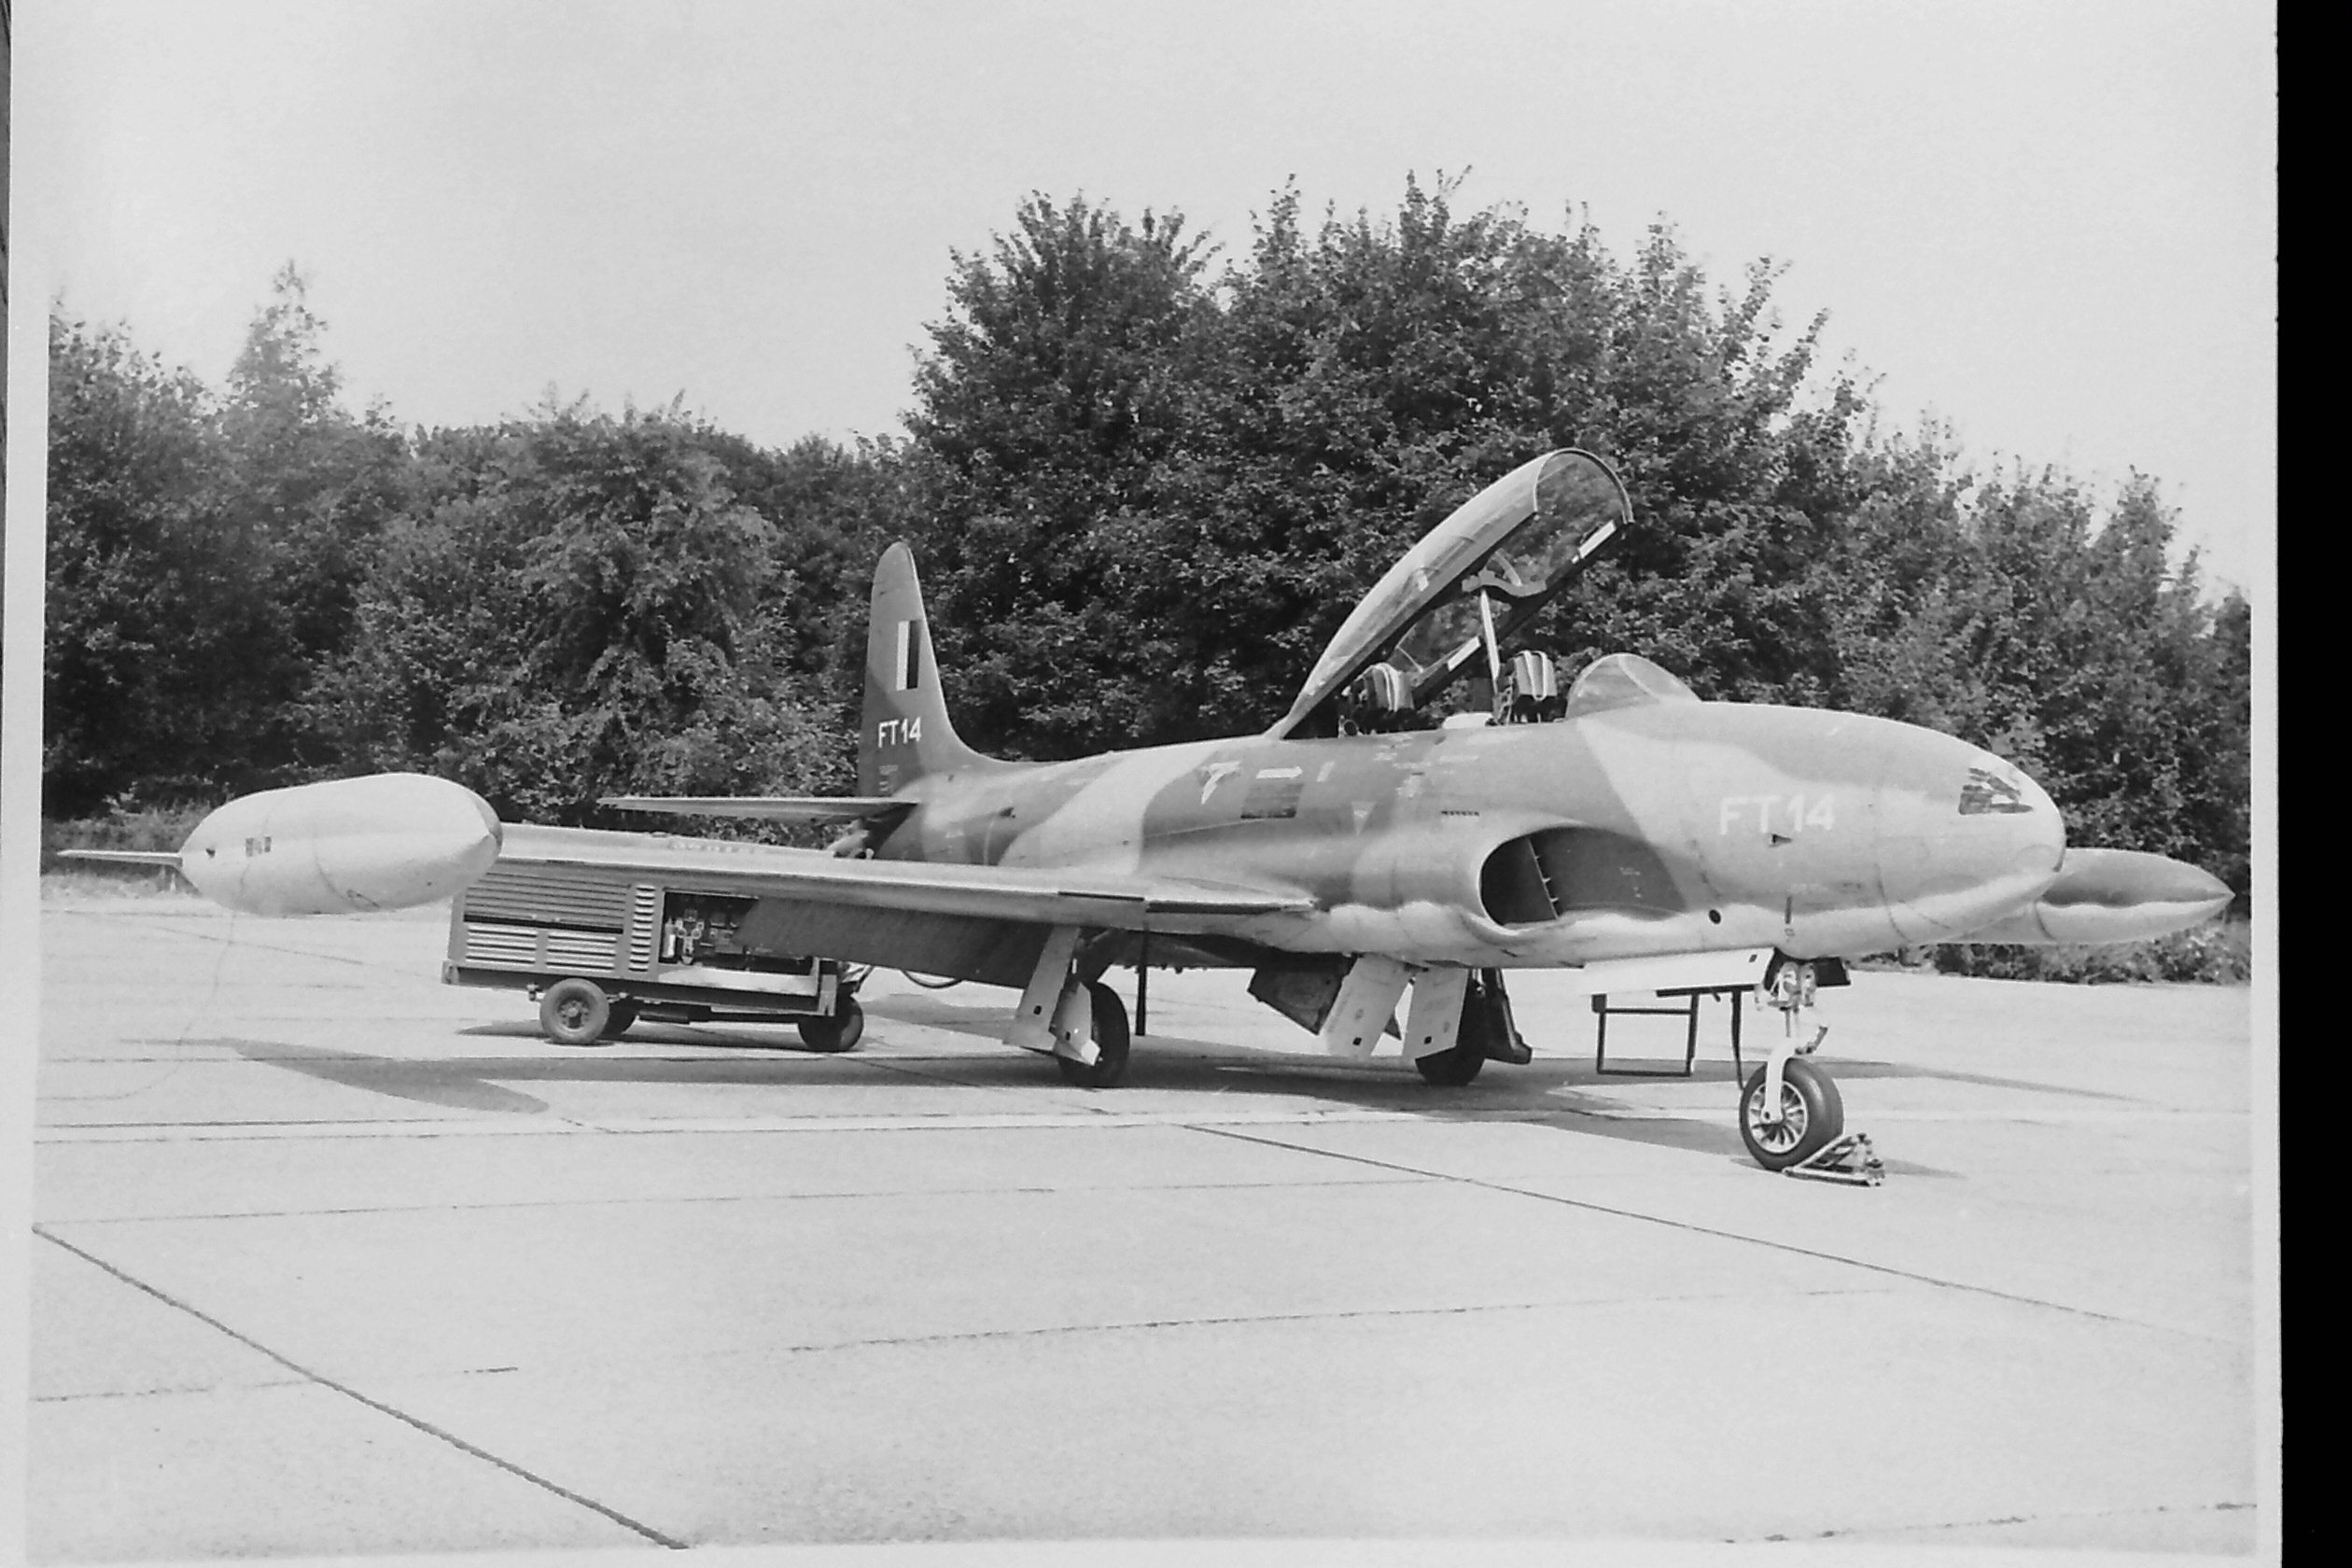 T33 FT14 On Flight Line Right Frontal View